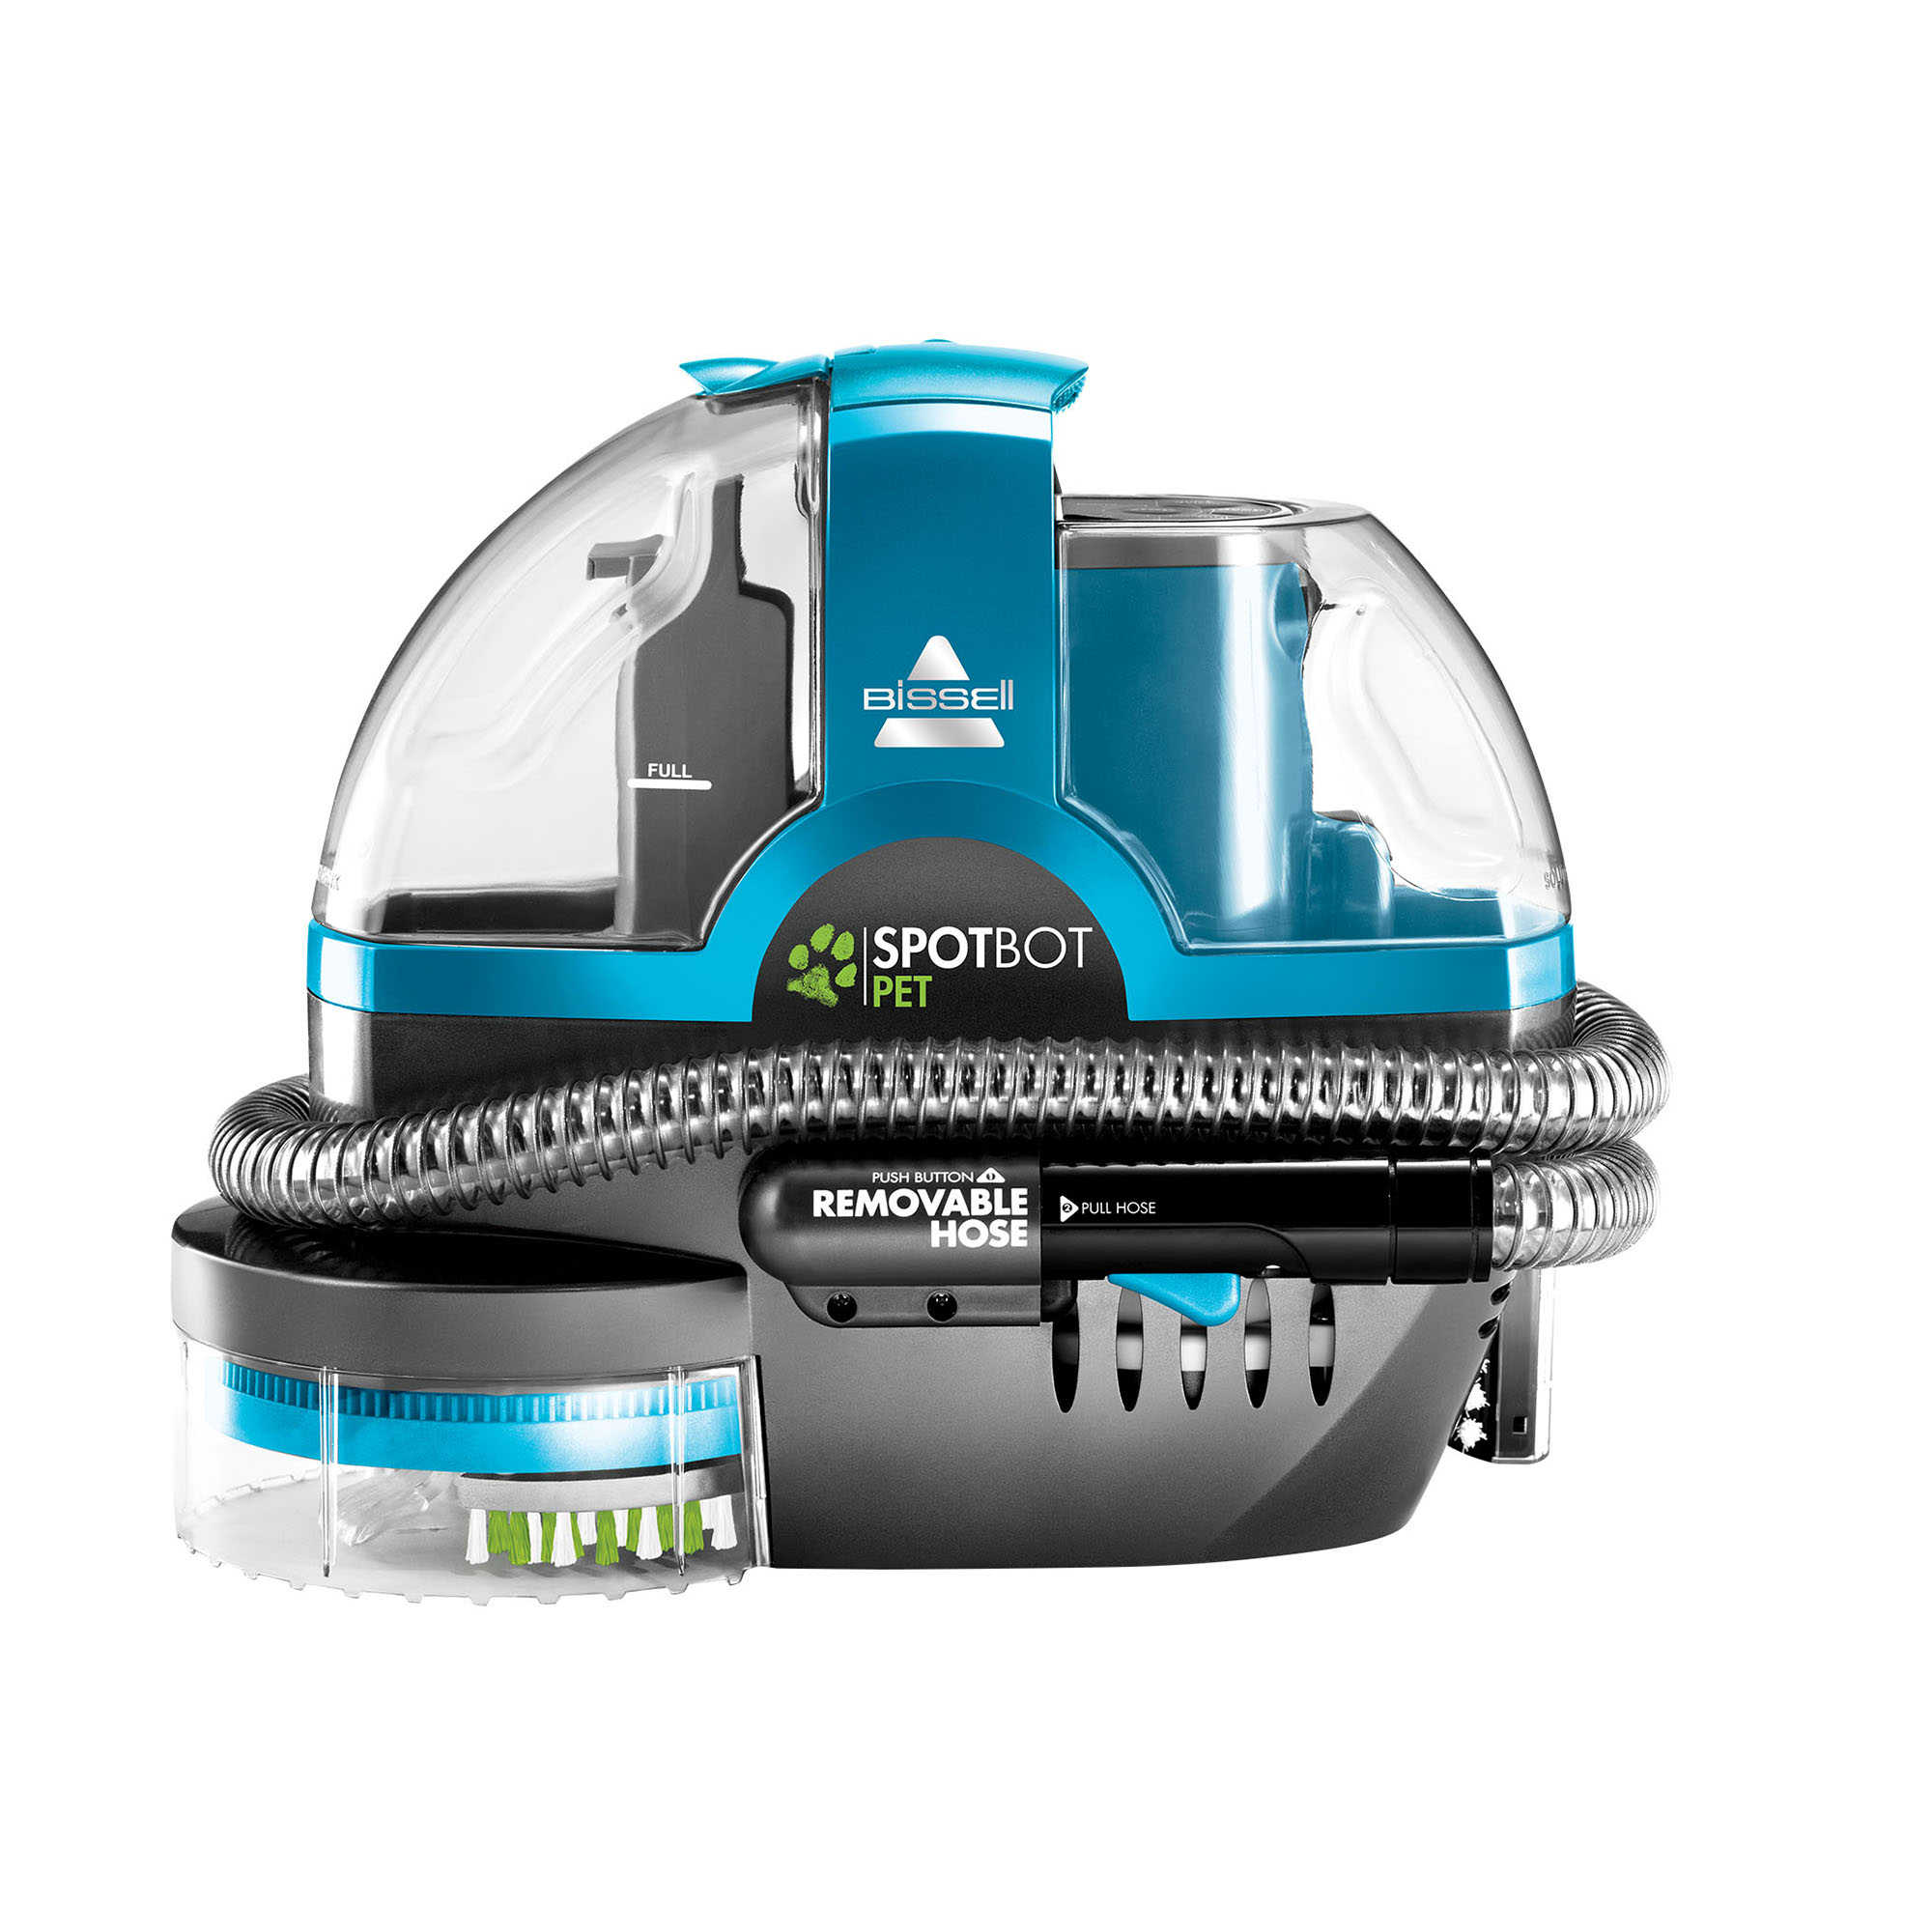 Home gt accessories gt bona pro series vinyl multipurpose cleaner - Image Of Bissell Spotbot Pet Deluxe Portable Carpet Cleaner In Disco Teal